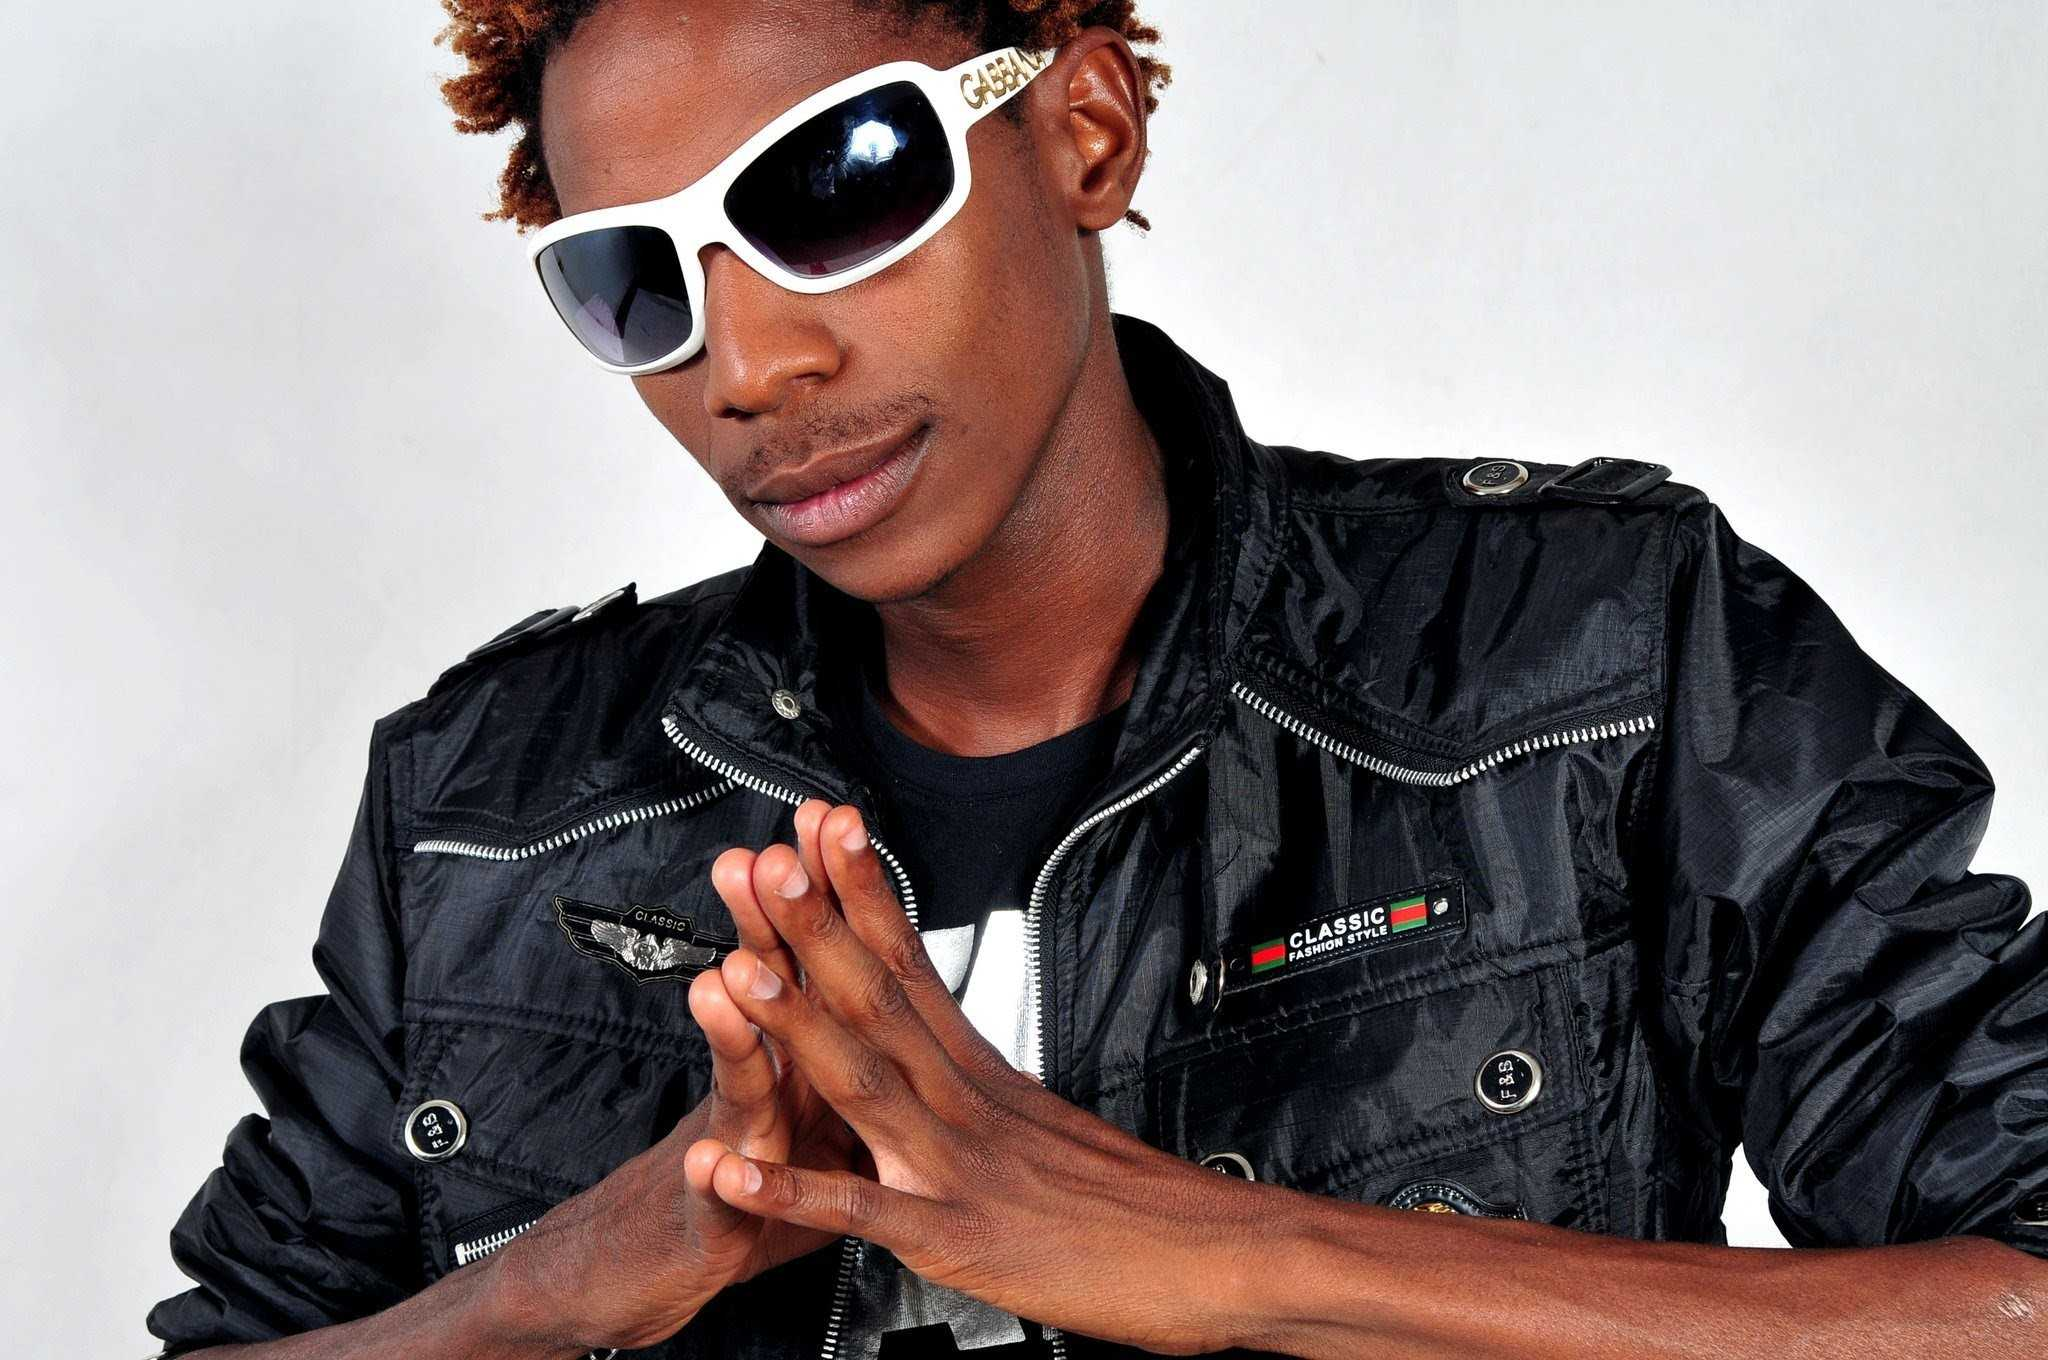 Image result for Eric omondi latest